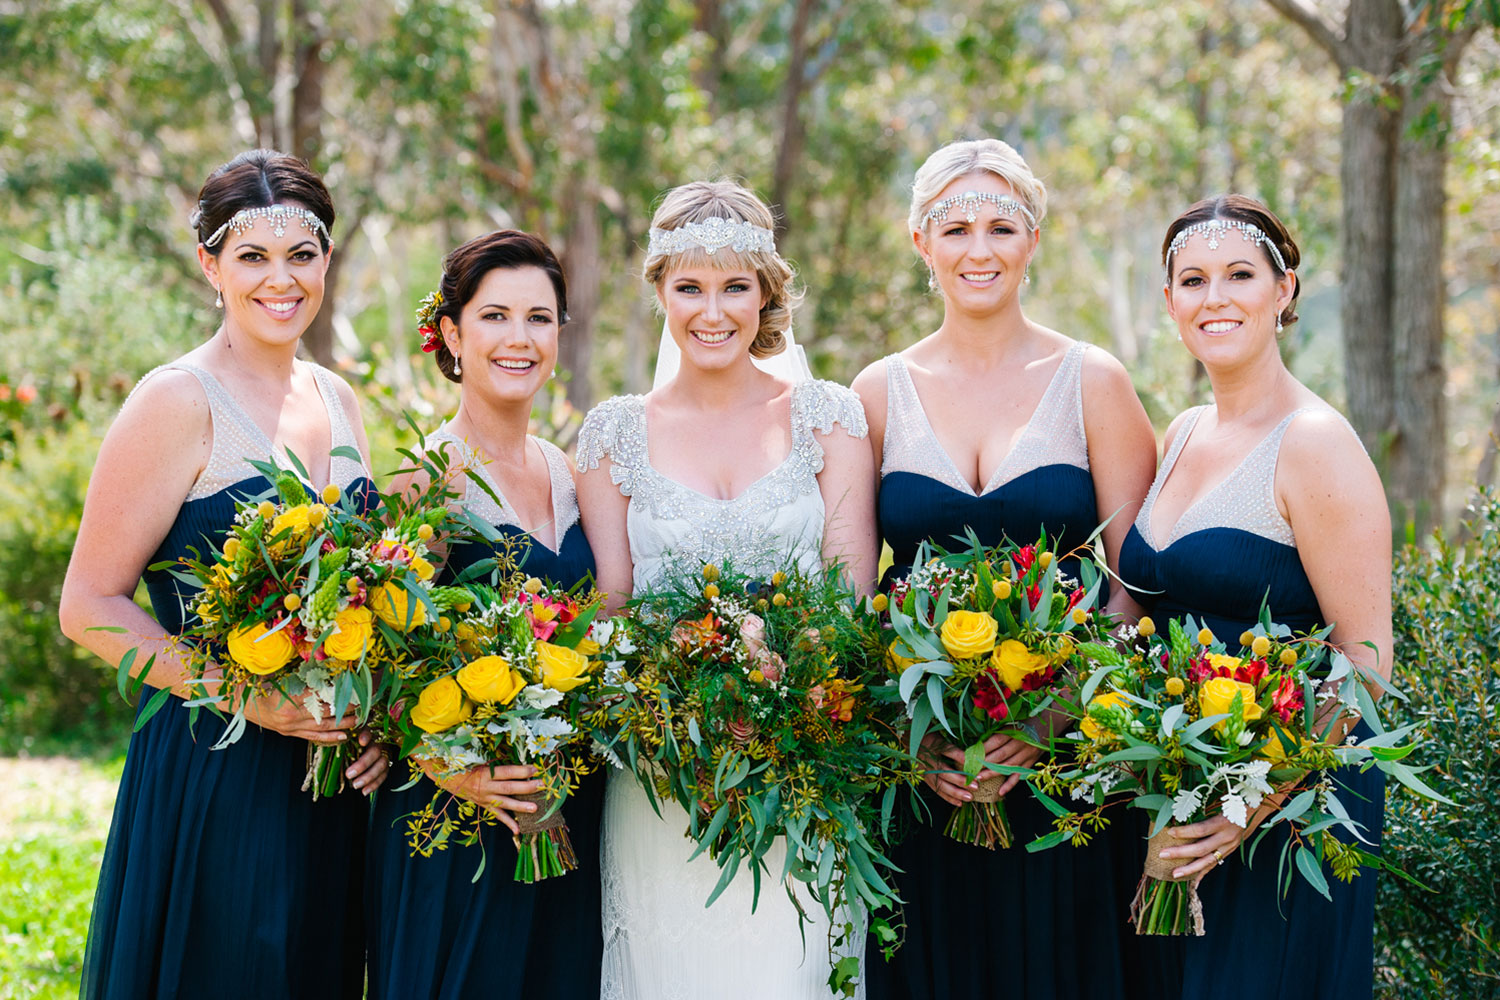 Wedding-Photographer-Hunter-Valley-KM19.jpg